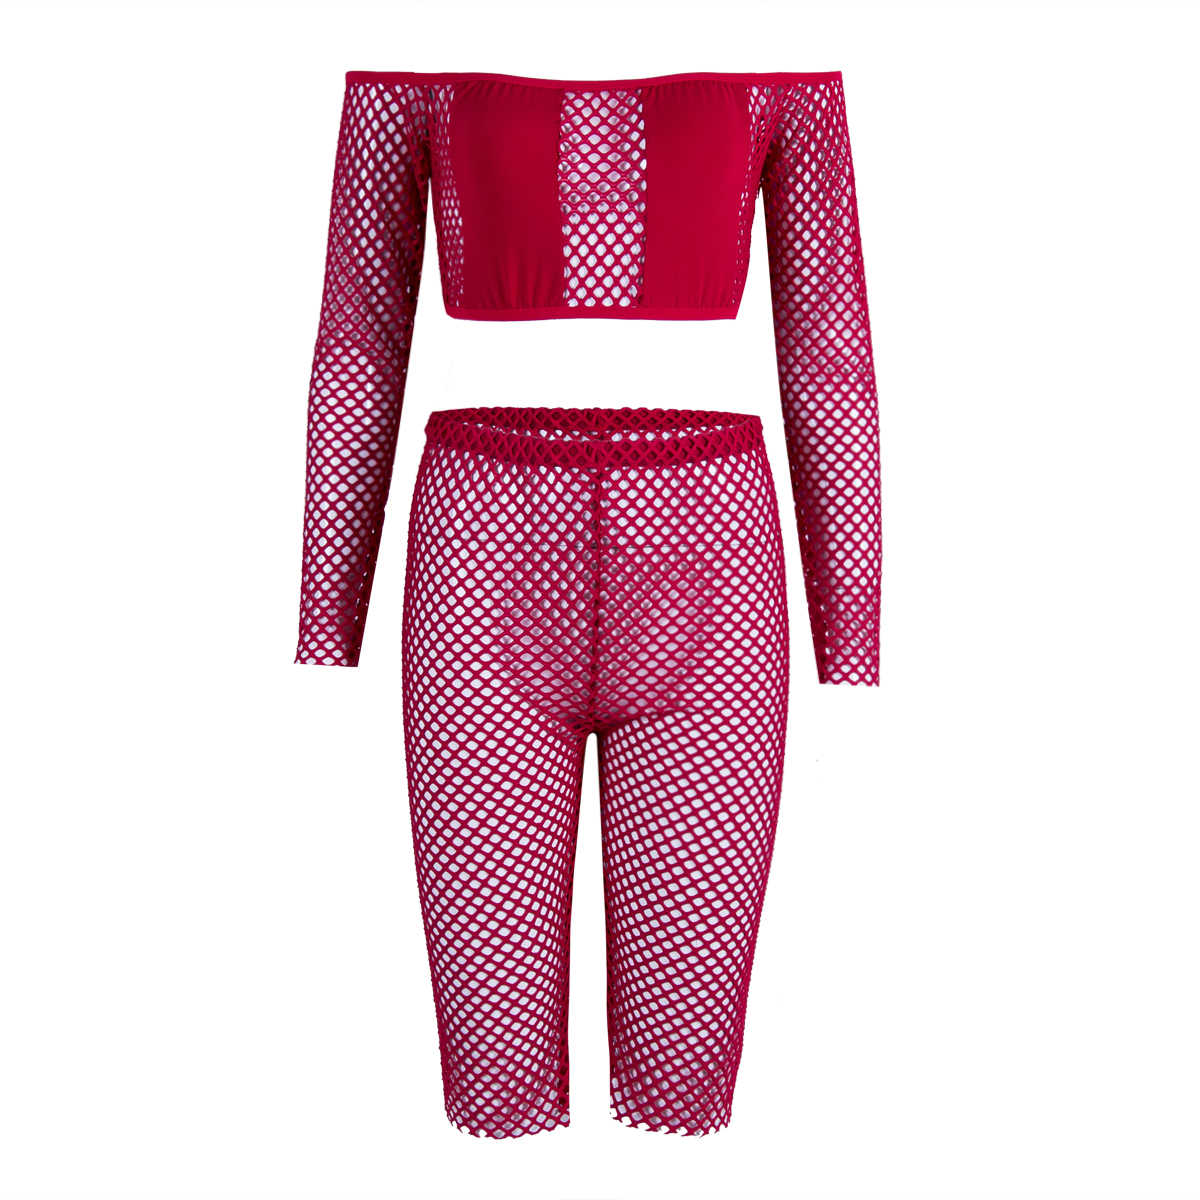 Neue Mode Frauen Push Up Top + Fishnet Shorts Bademode 2Pcs Mesh Langarm Solide Slash Neck Sets